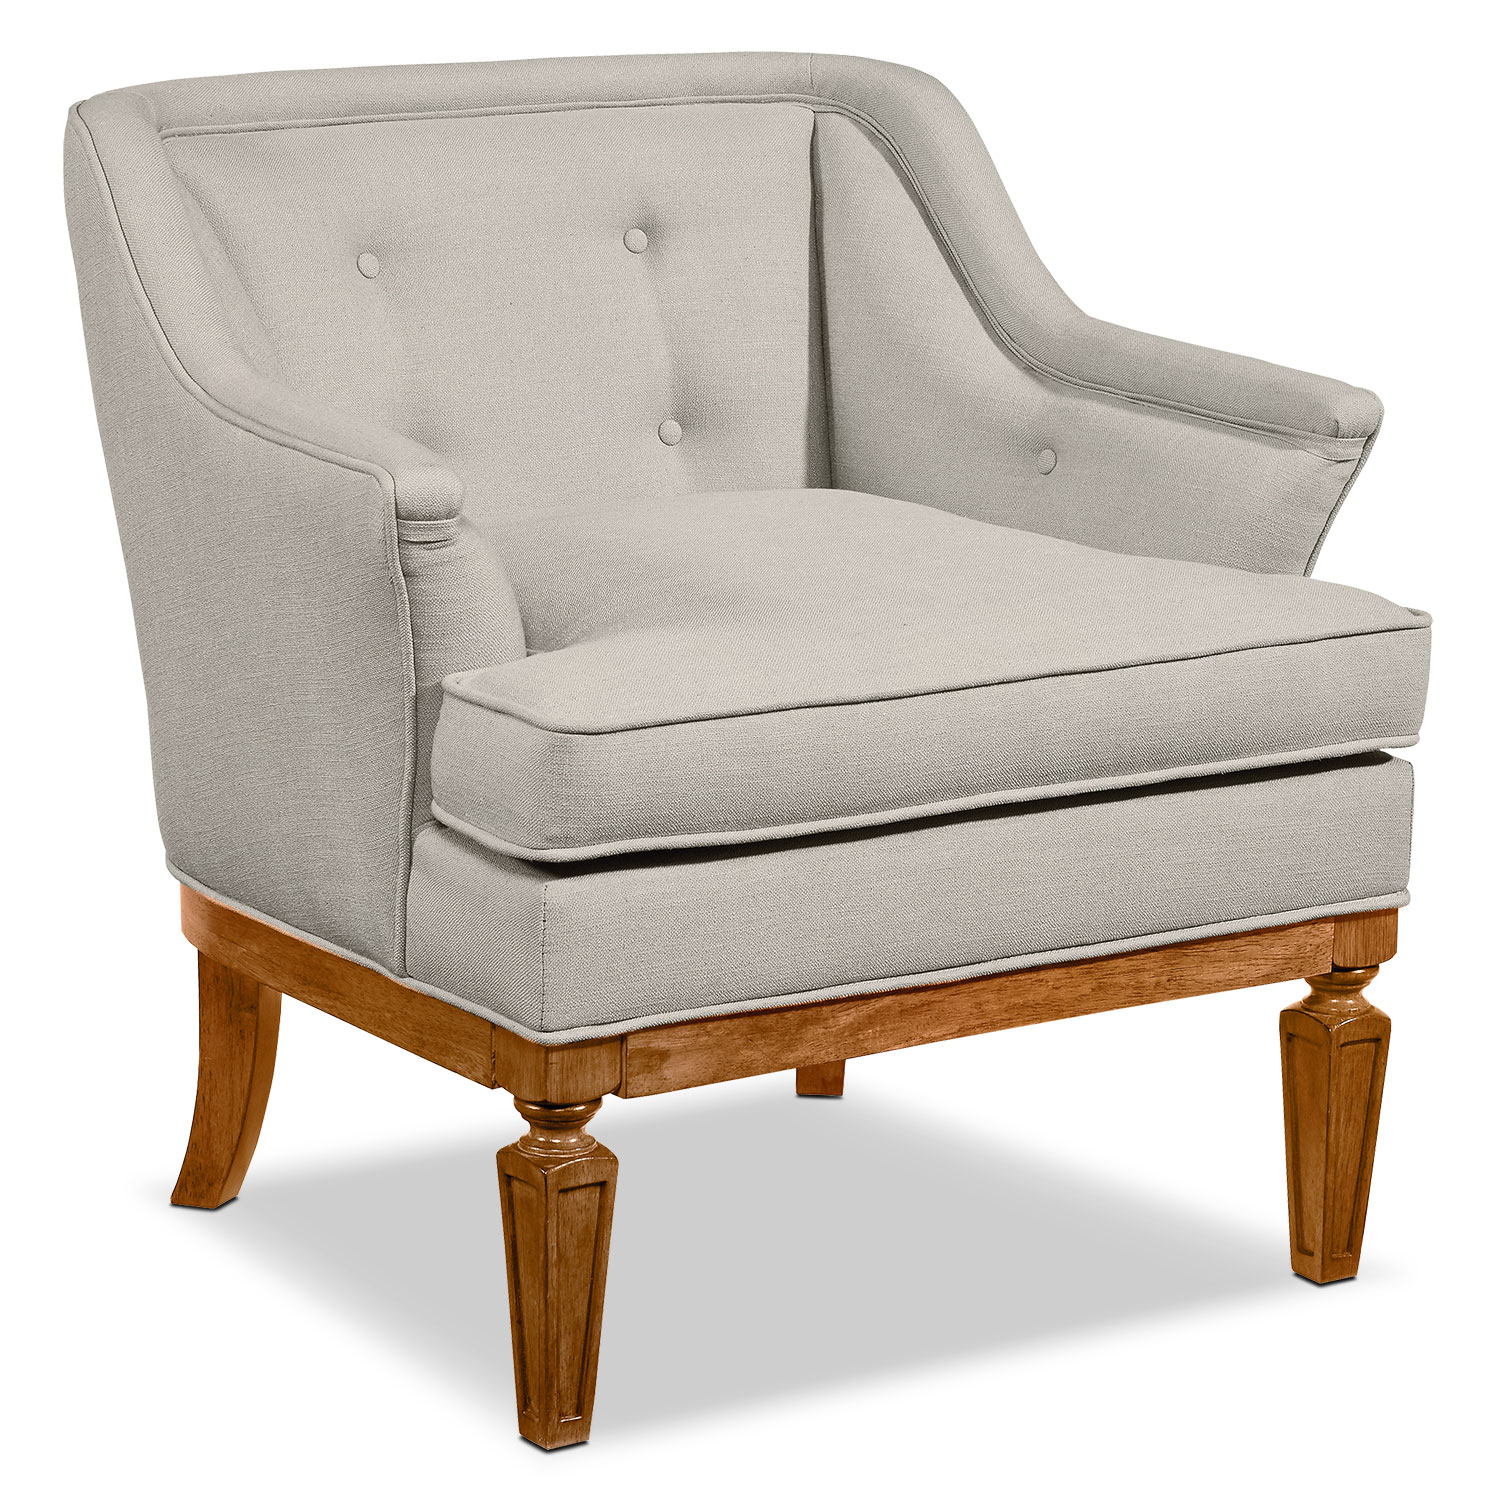 Living Room Furniture From Magnolia Home